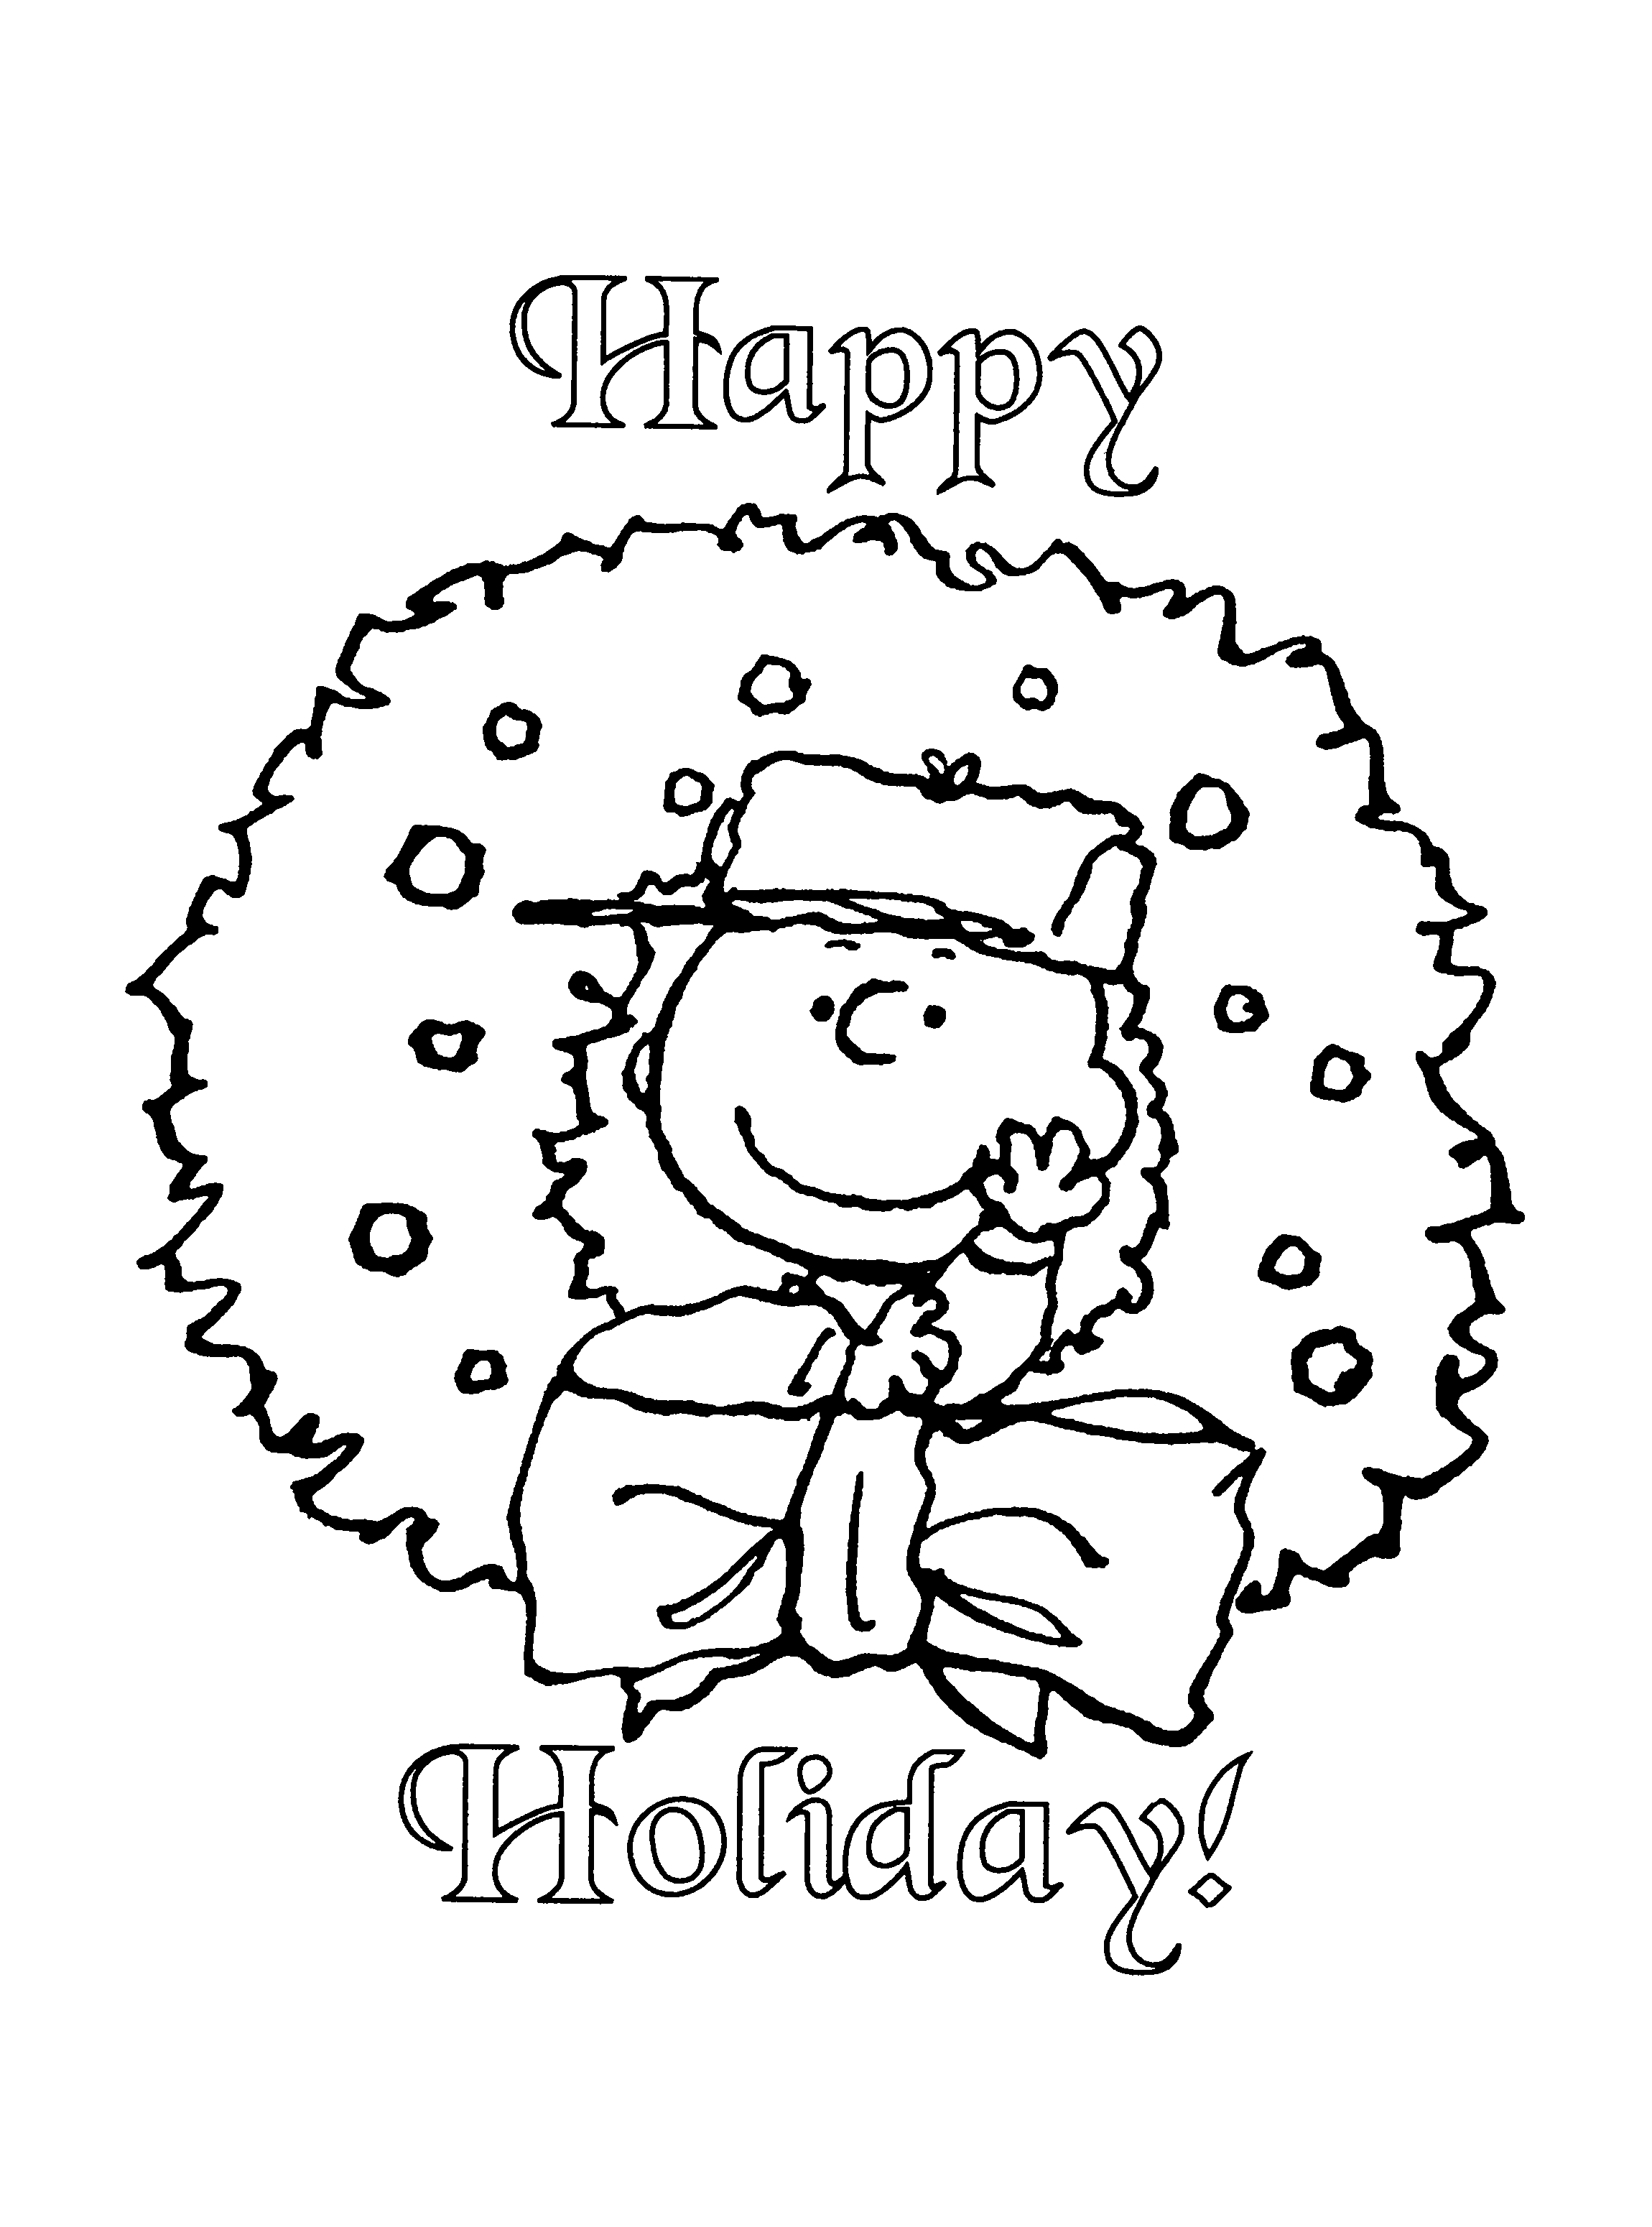 Peanuts Xmas Coloring and Activity Book | Snoopy | Pinterest | Dibujo